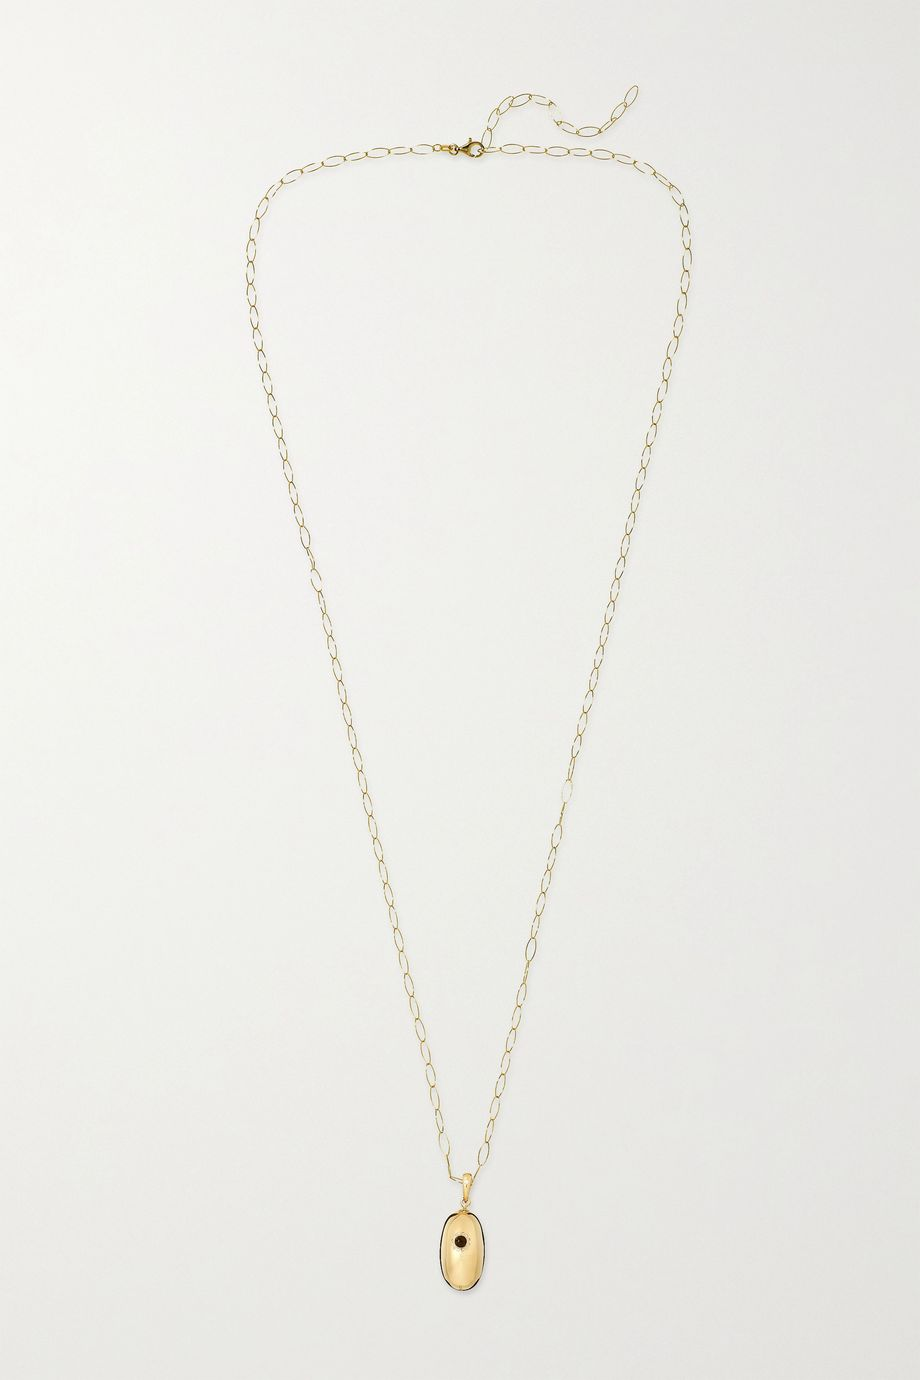 Loquet + Chantal Conrad Lumiere 14 and 18-karat gold necklace